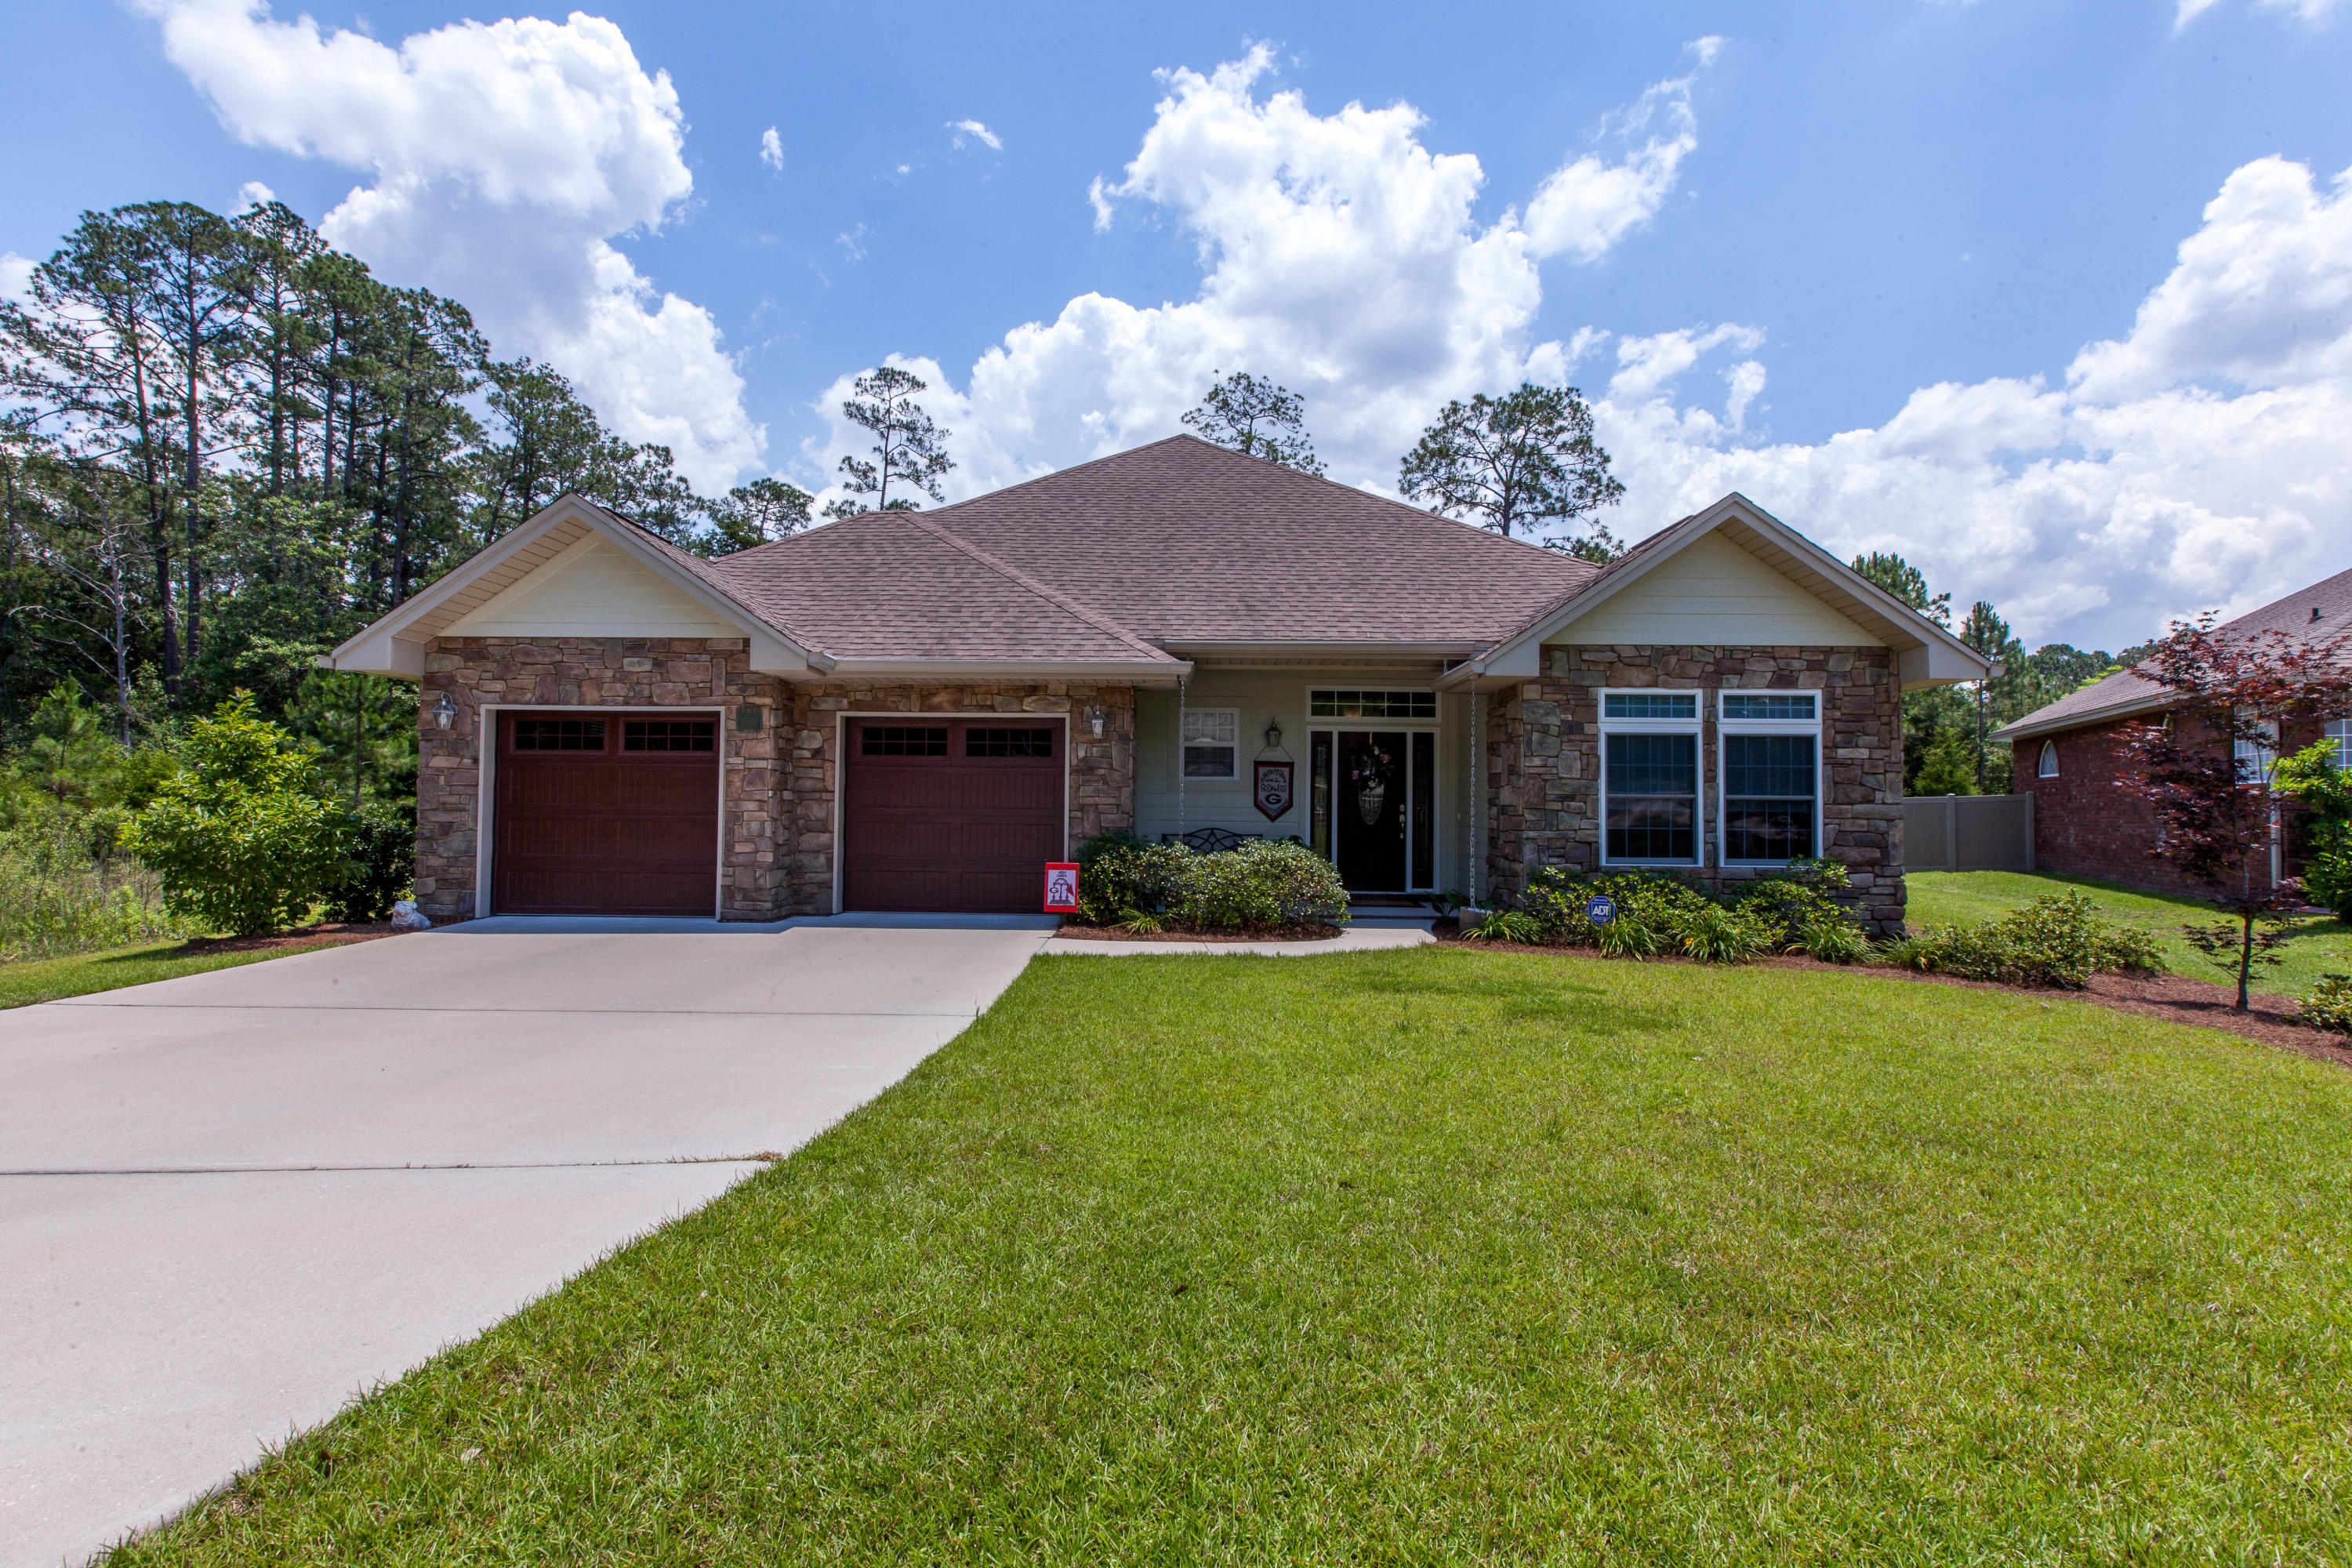 Photo of home for sale at 4559 Pfitzer, Crestview FL